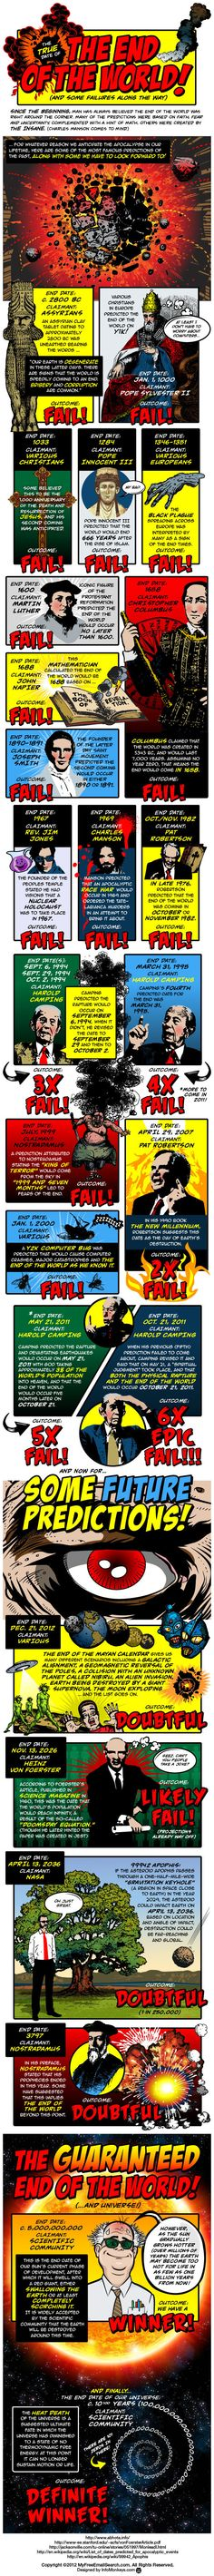 A history of the End Of The World and failed Doomsday predictions.  Man has attempted to predict the apocalypse... but with no success.  Take a look at this infographic to see a few of the highlights... and to see how the universe might REALLY end.